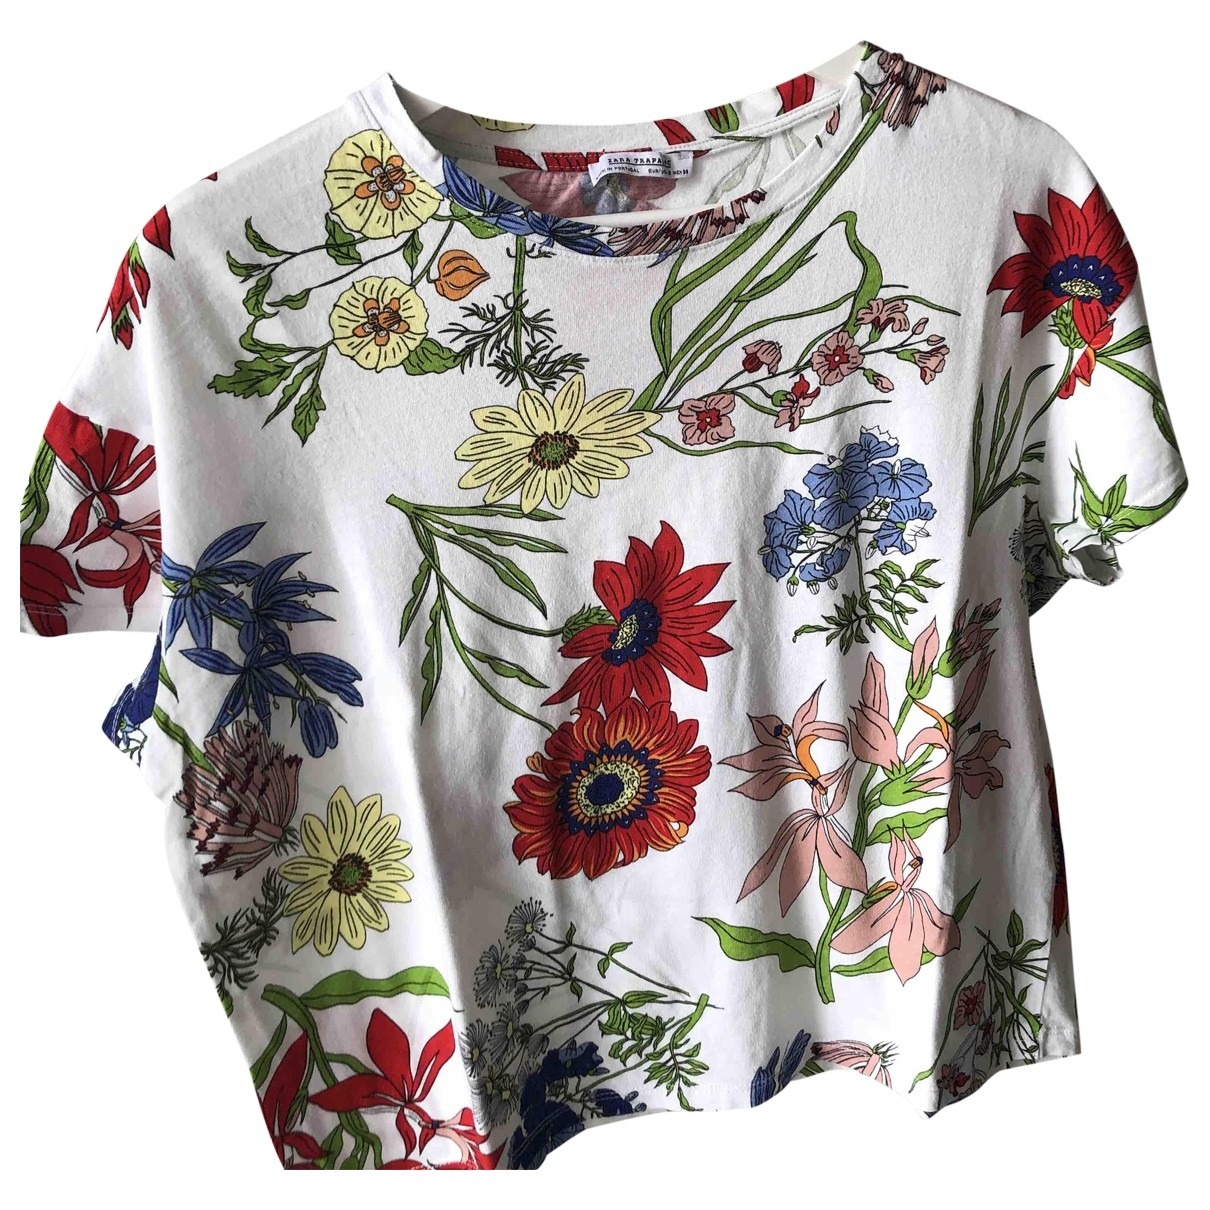 Zara \N Cotton  top for Women S International